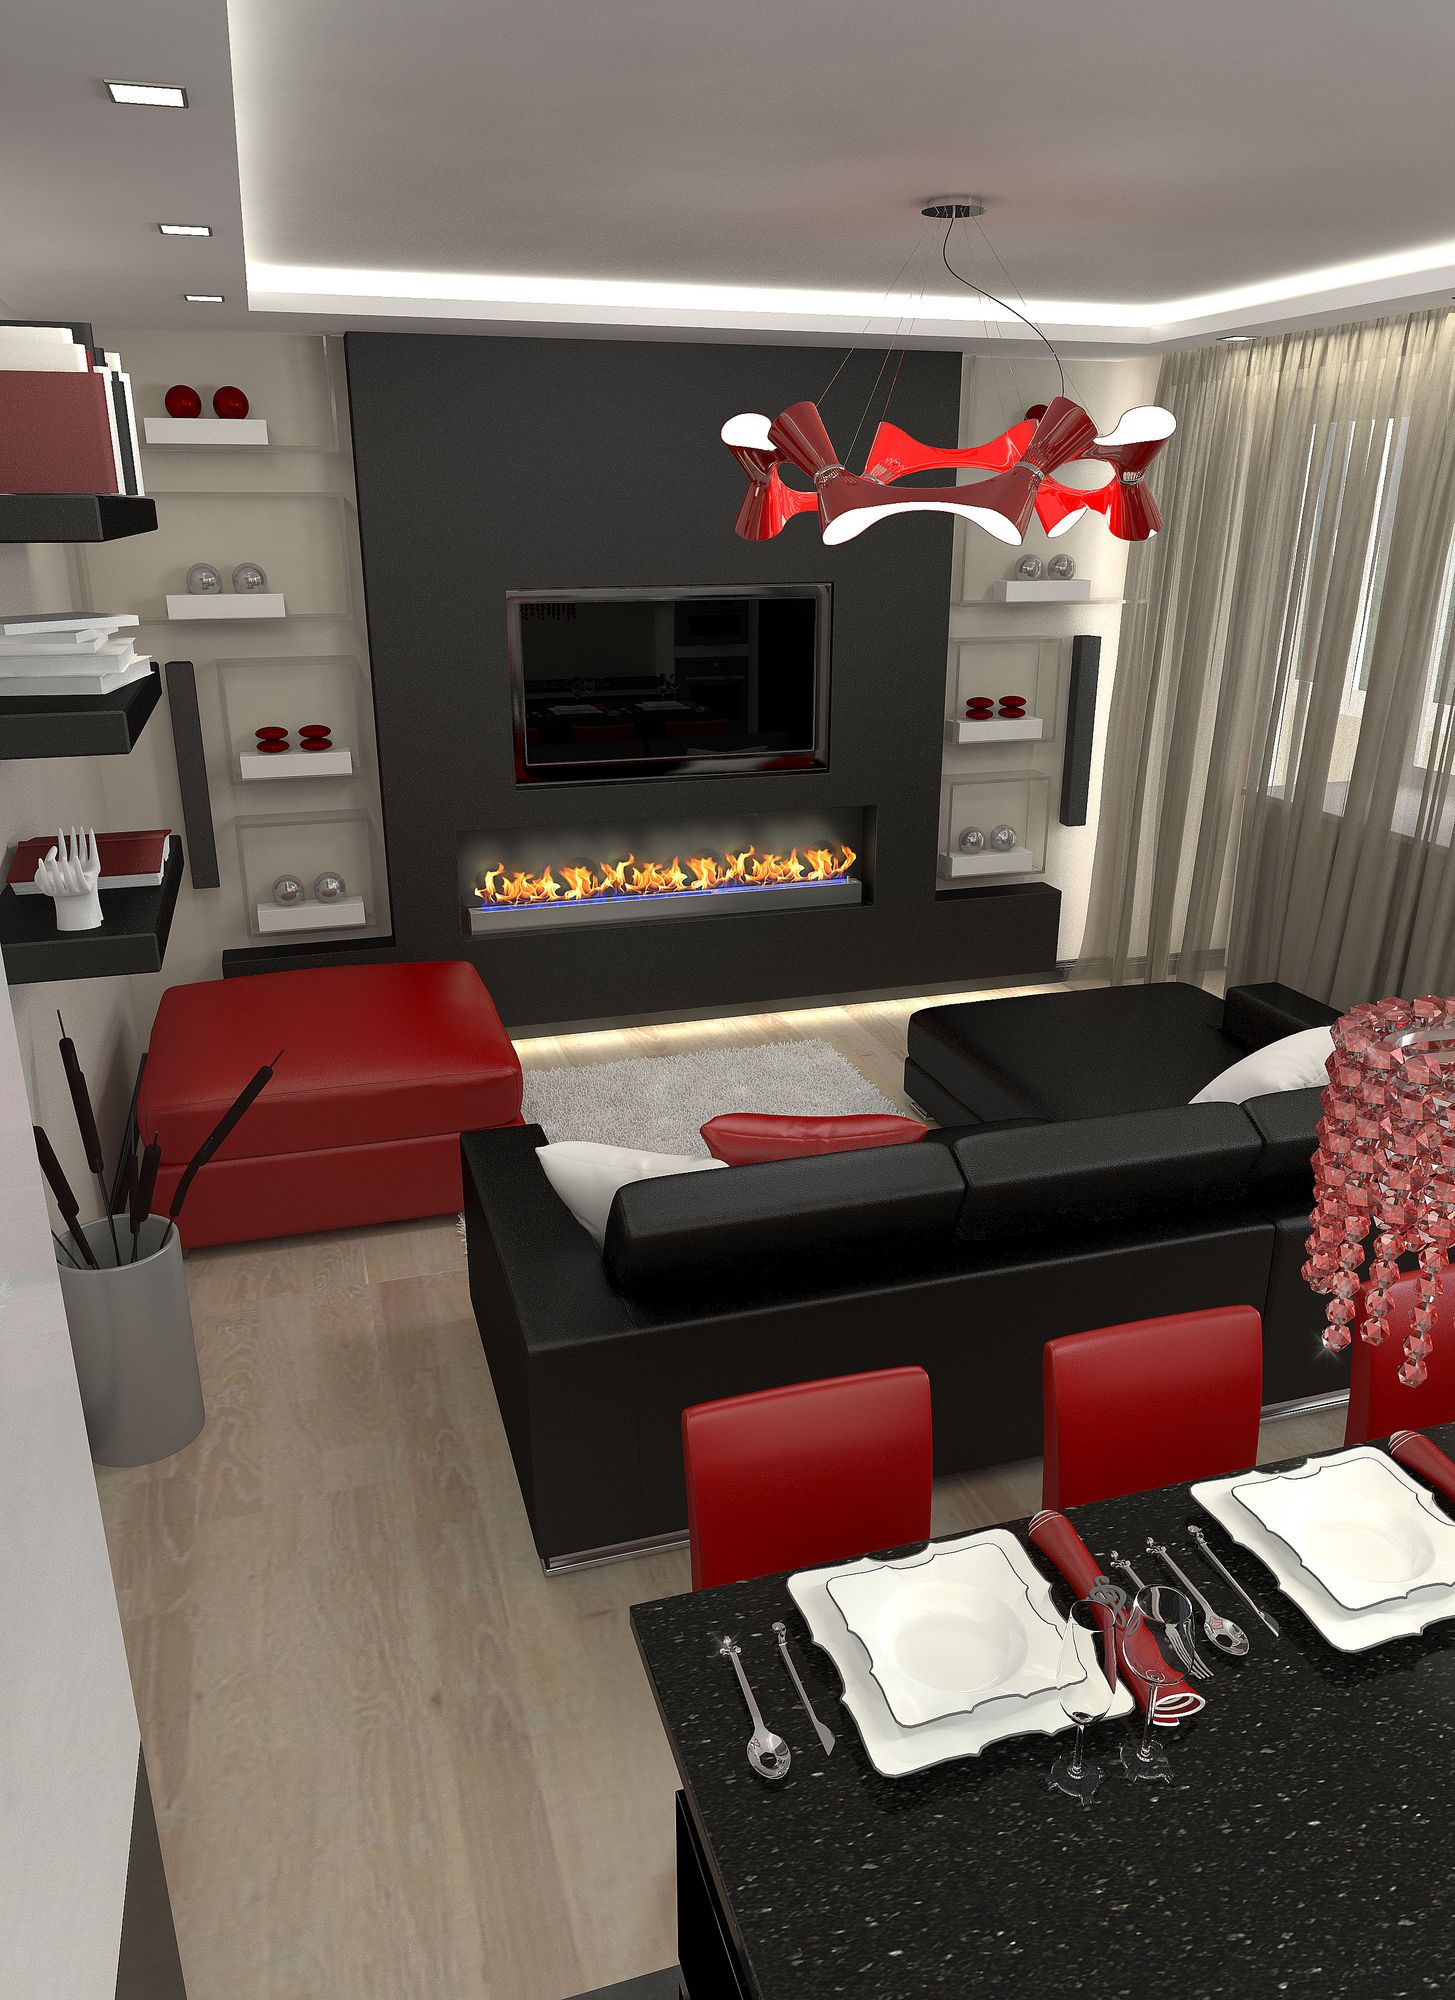 red-black-and-white-living-room-amazing-ideas-9-on-home